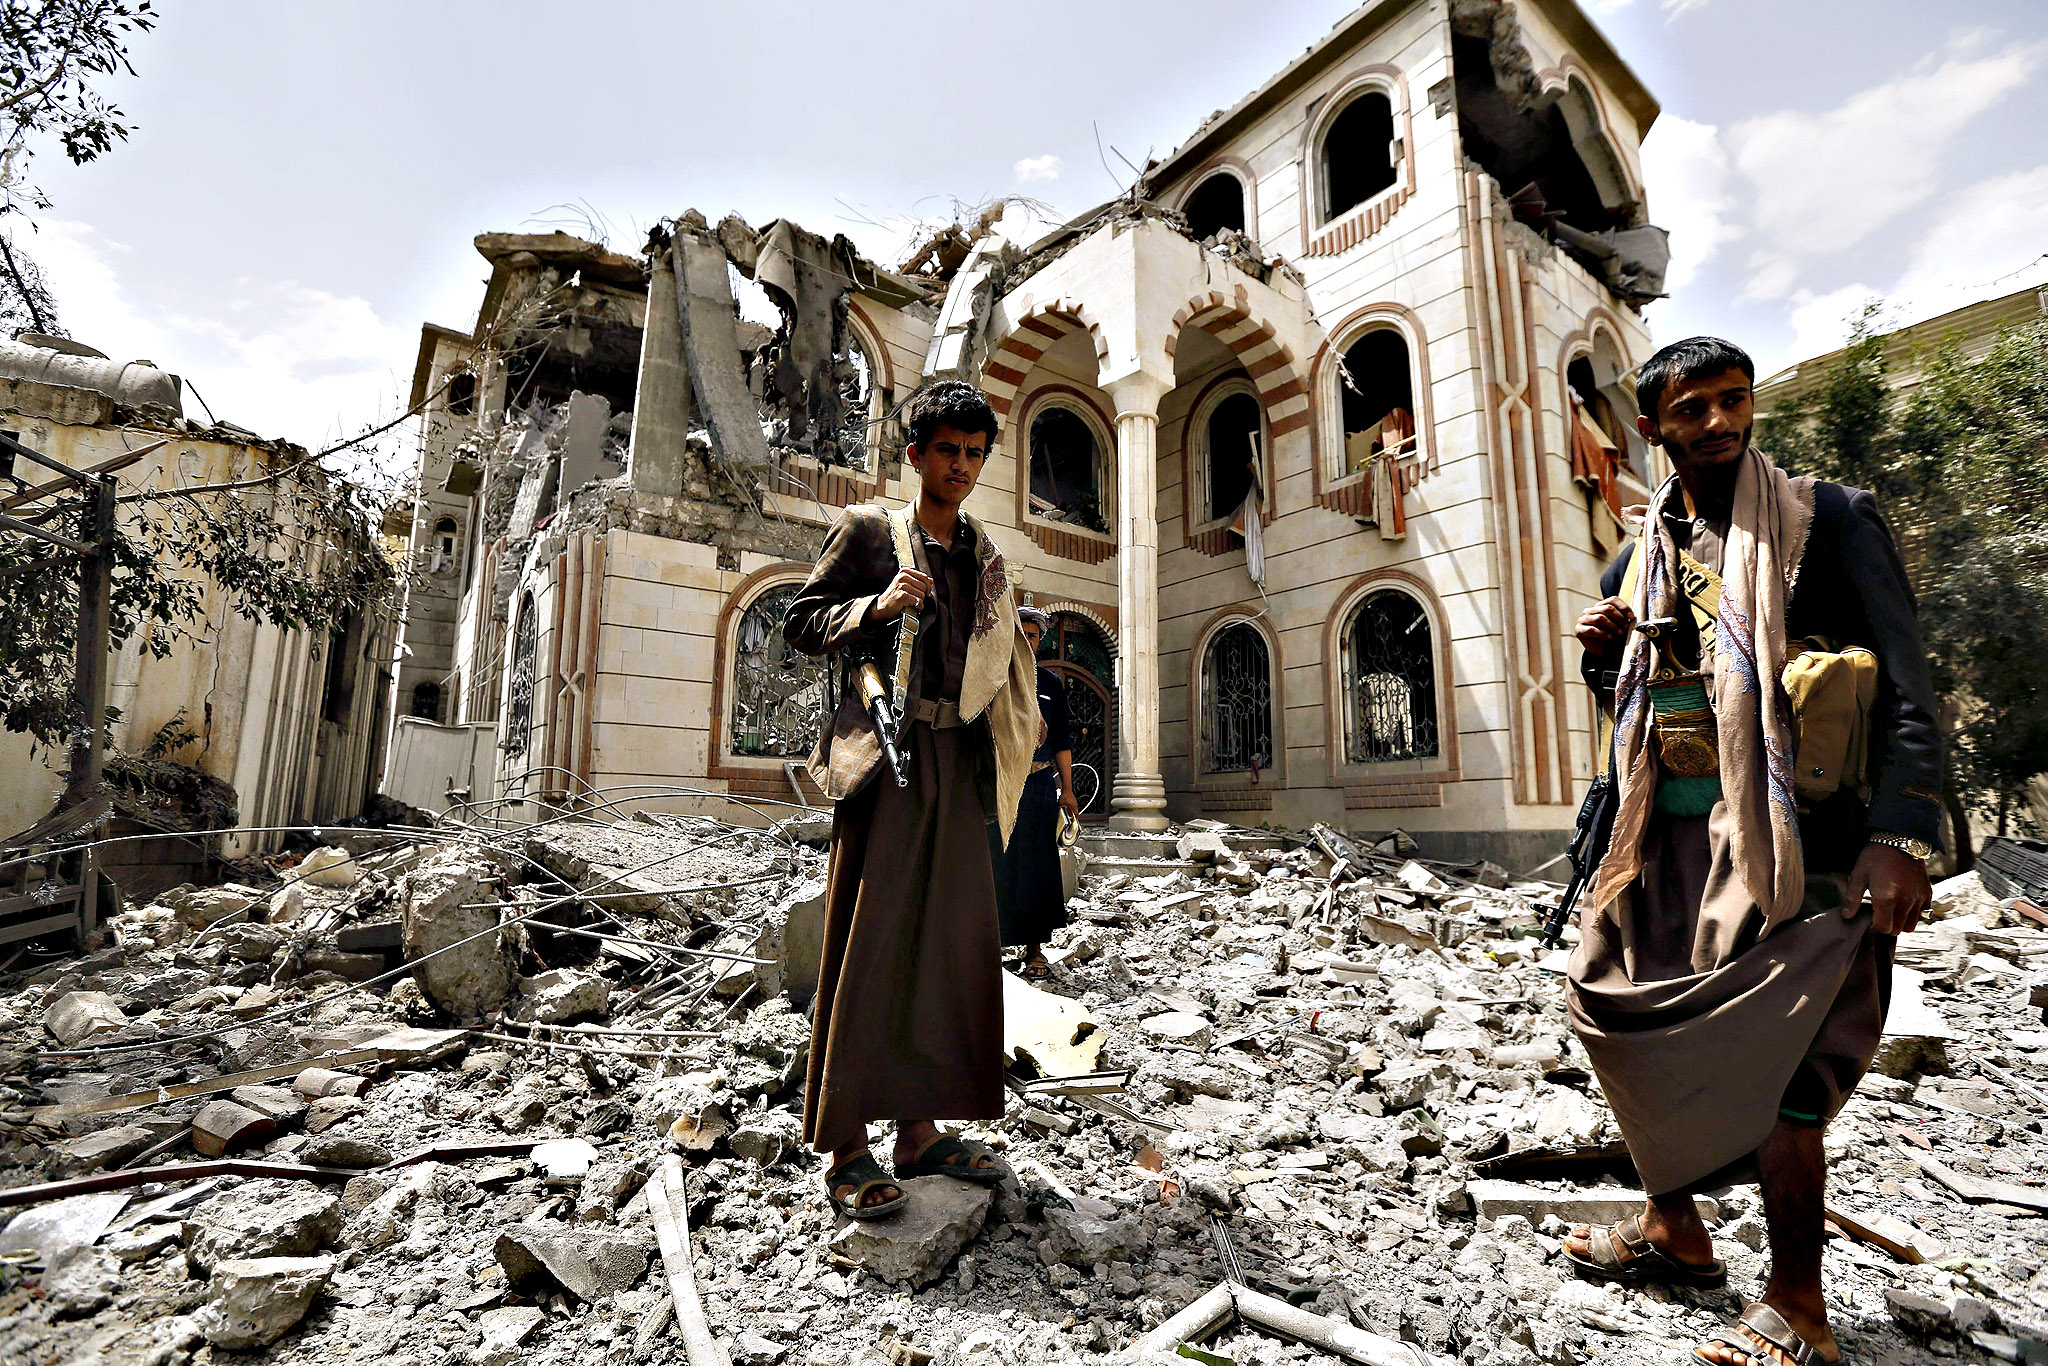 Guards stand on the rubble of the house of Brigadier Khaled al-Anduli, an army commander loyal to the Houthi movement, after it was hit by Saudi-led air strikes in Yemen's capital Sanaa...Guards stand on the rubble of the house of Brigadier Khaled al-Anduli, an army commander loyal to the Houthi movement, after it was hit by Saudi-led air strikes in Yemen's capital Sanaa July 6, 2015. Yemen's exiled government said on Monday it expects a deal shortly on a humanitarian ceasefire that would run through the Muslim Eid al-Fitr holiday later this month, as the capital Sanaa came under renewed air strikes